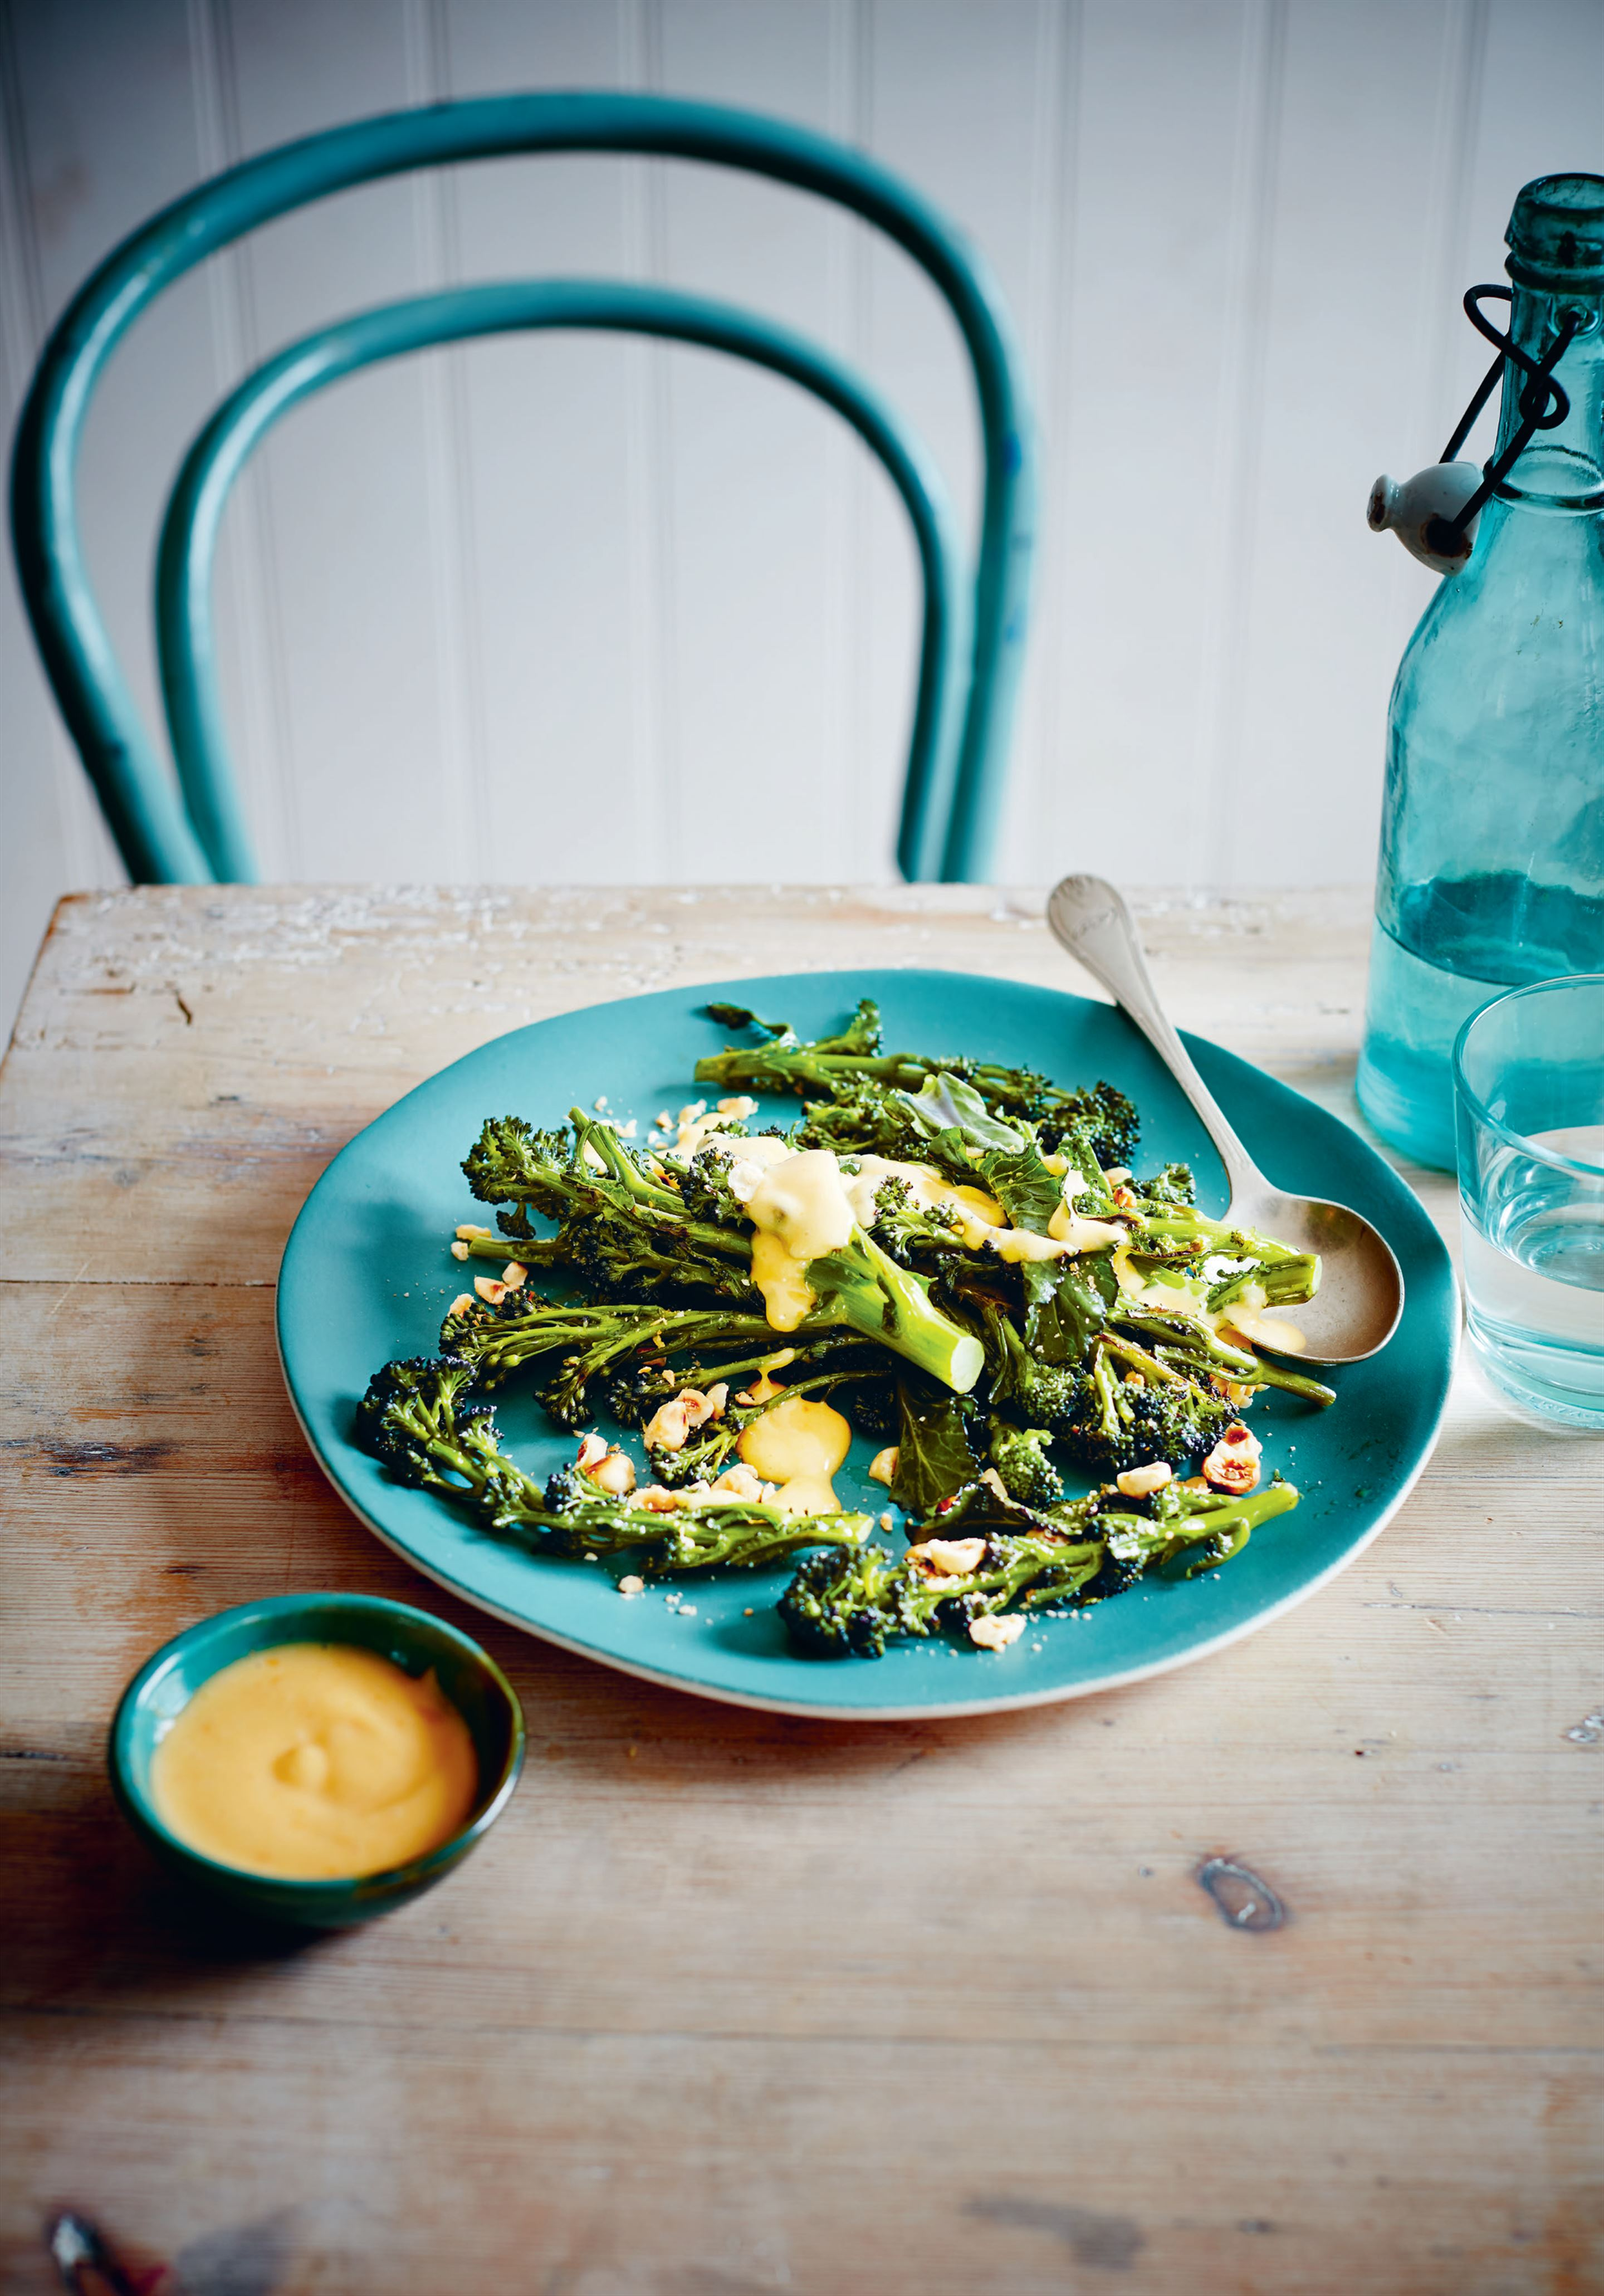 Sprouting broccoli with blood orange hollandaise